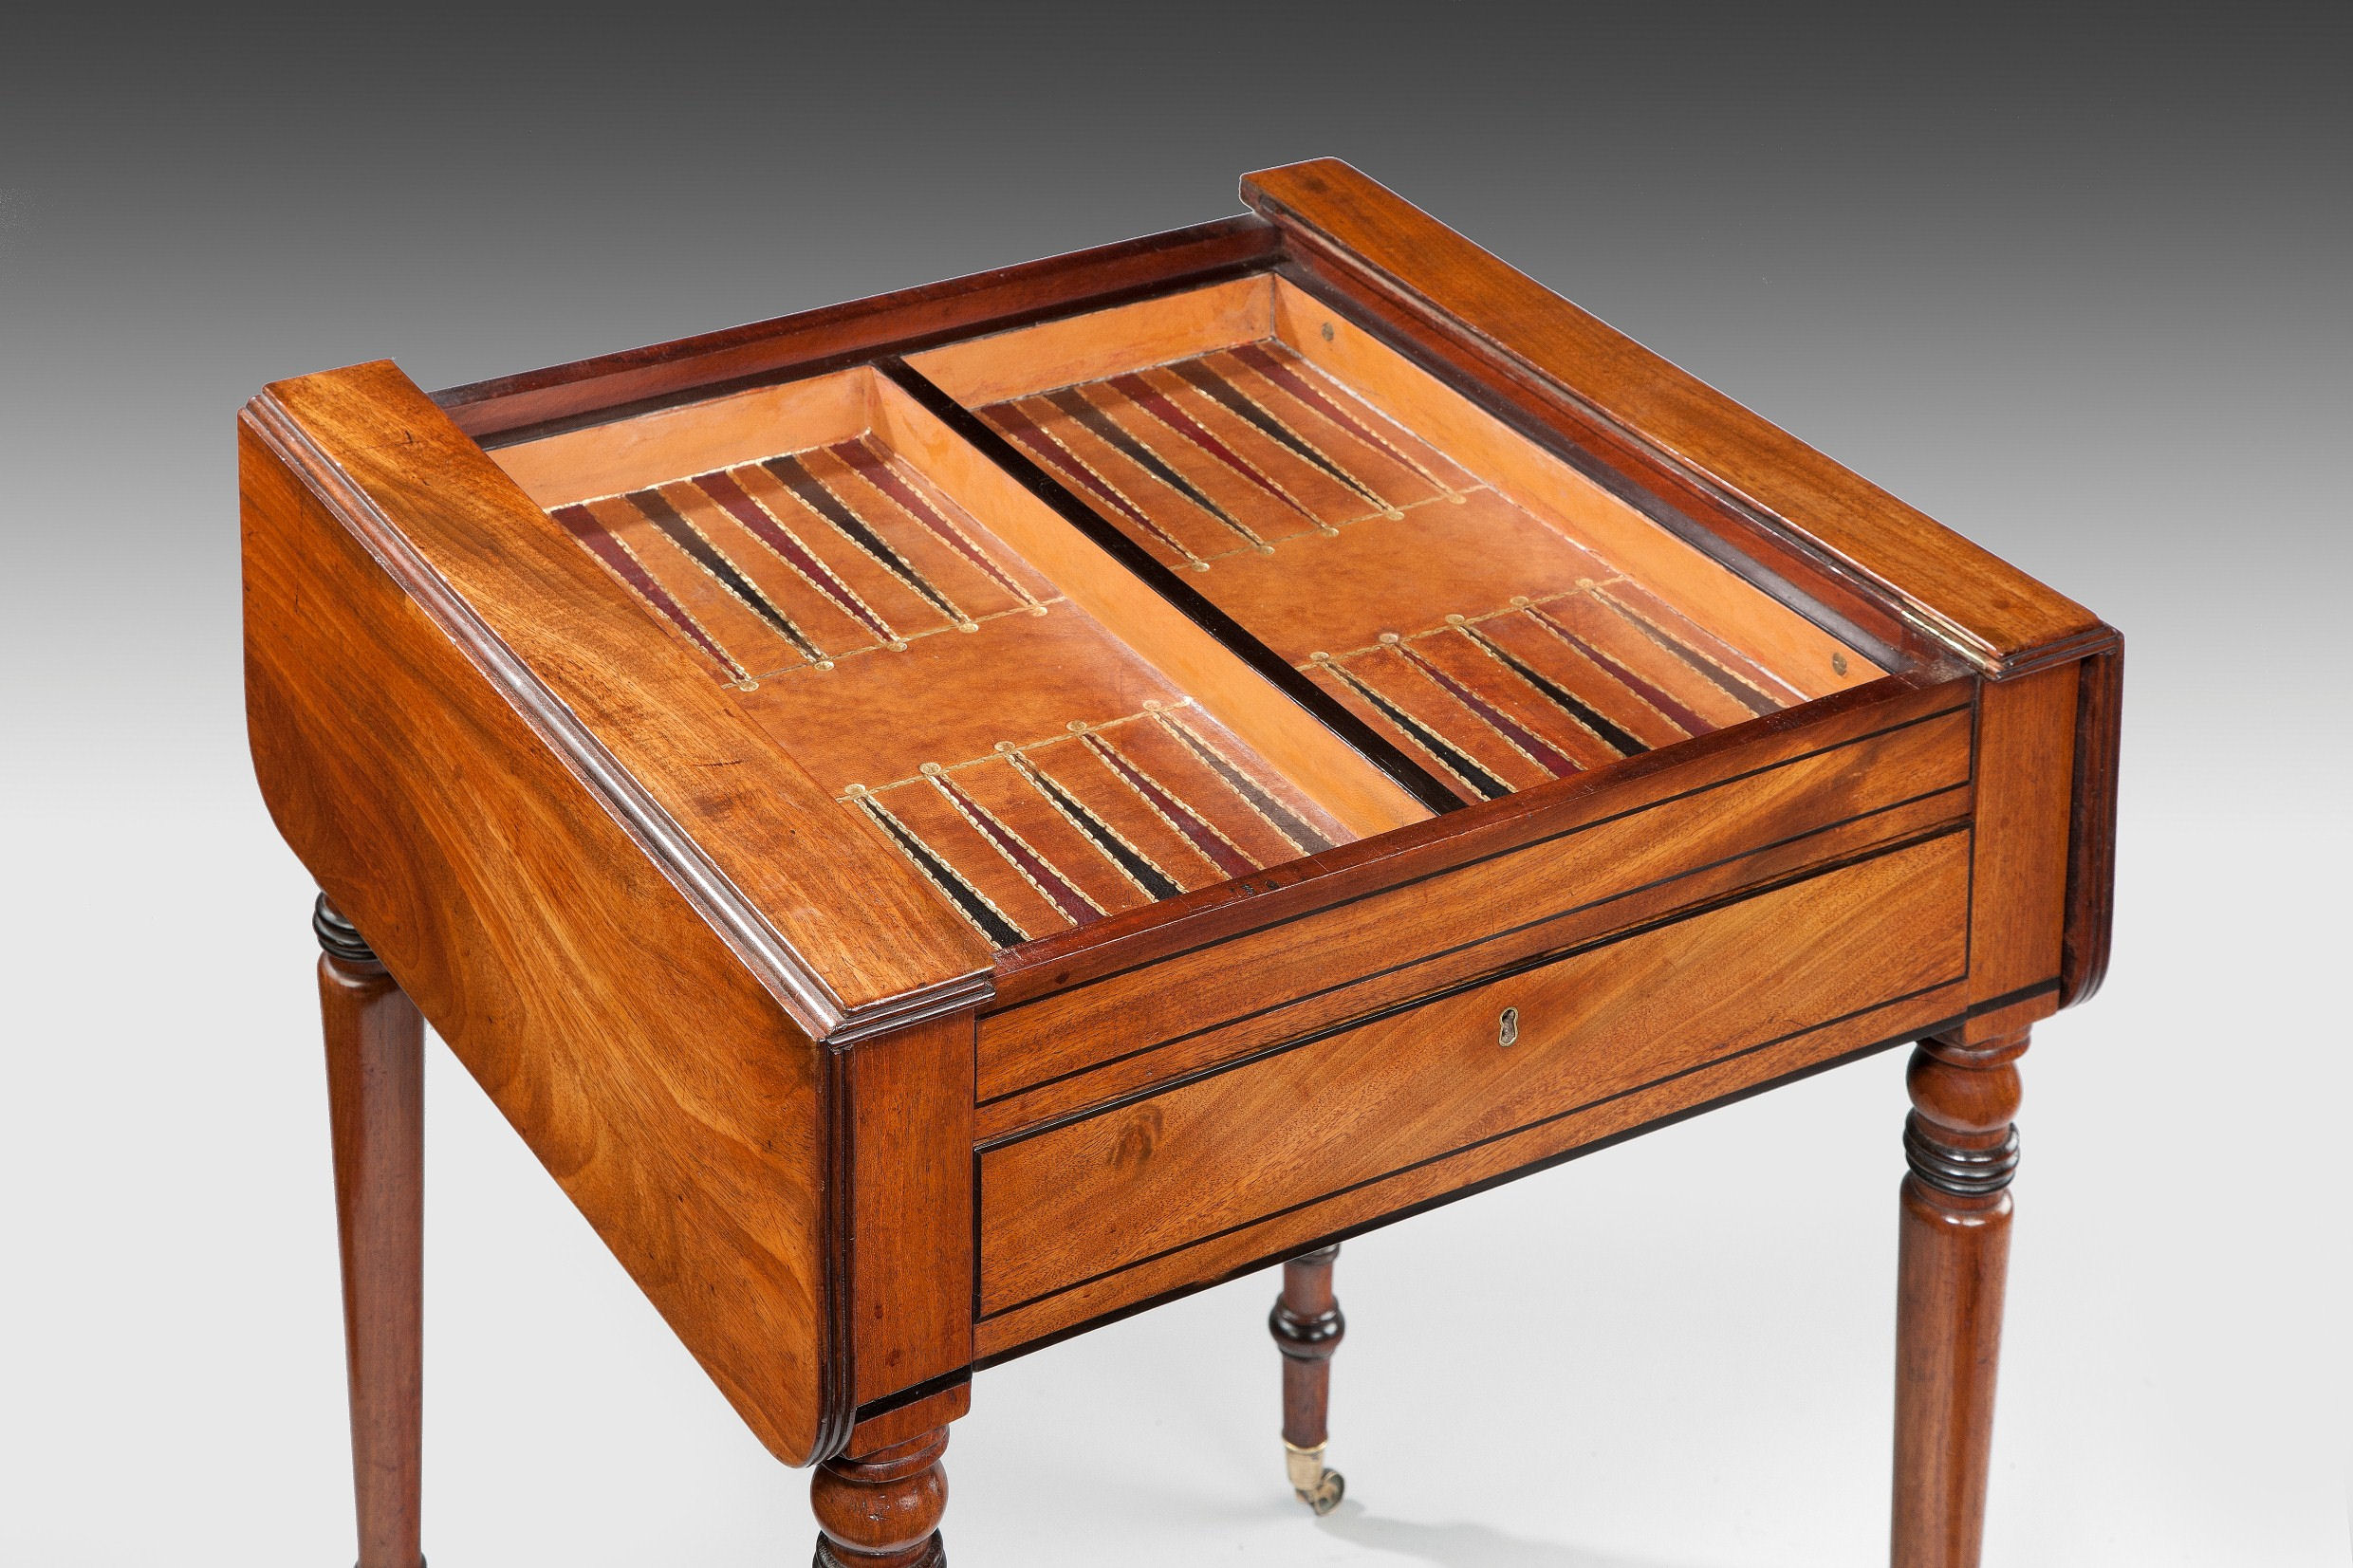 Games Table Chess Board Backgammon Well Mahogany Antique